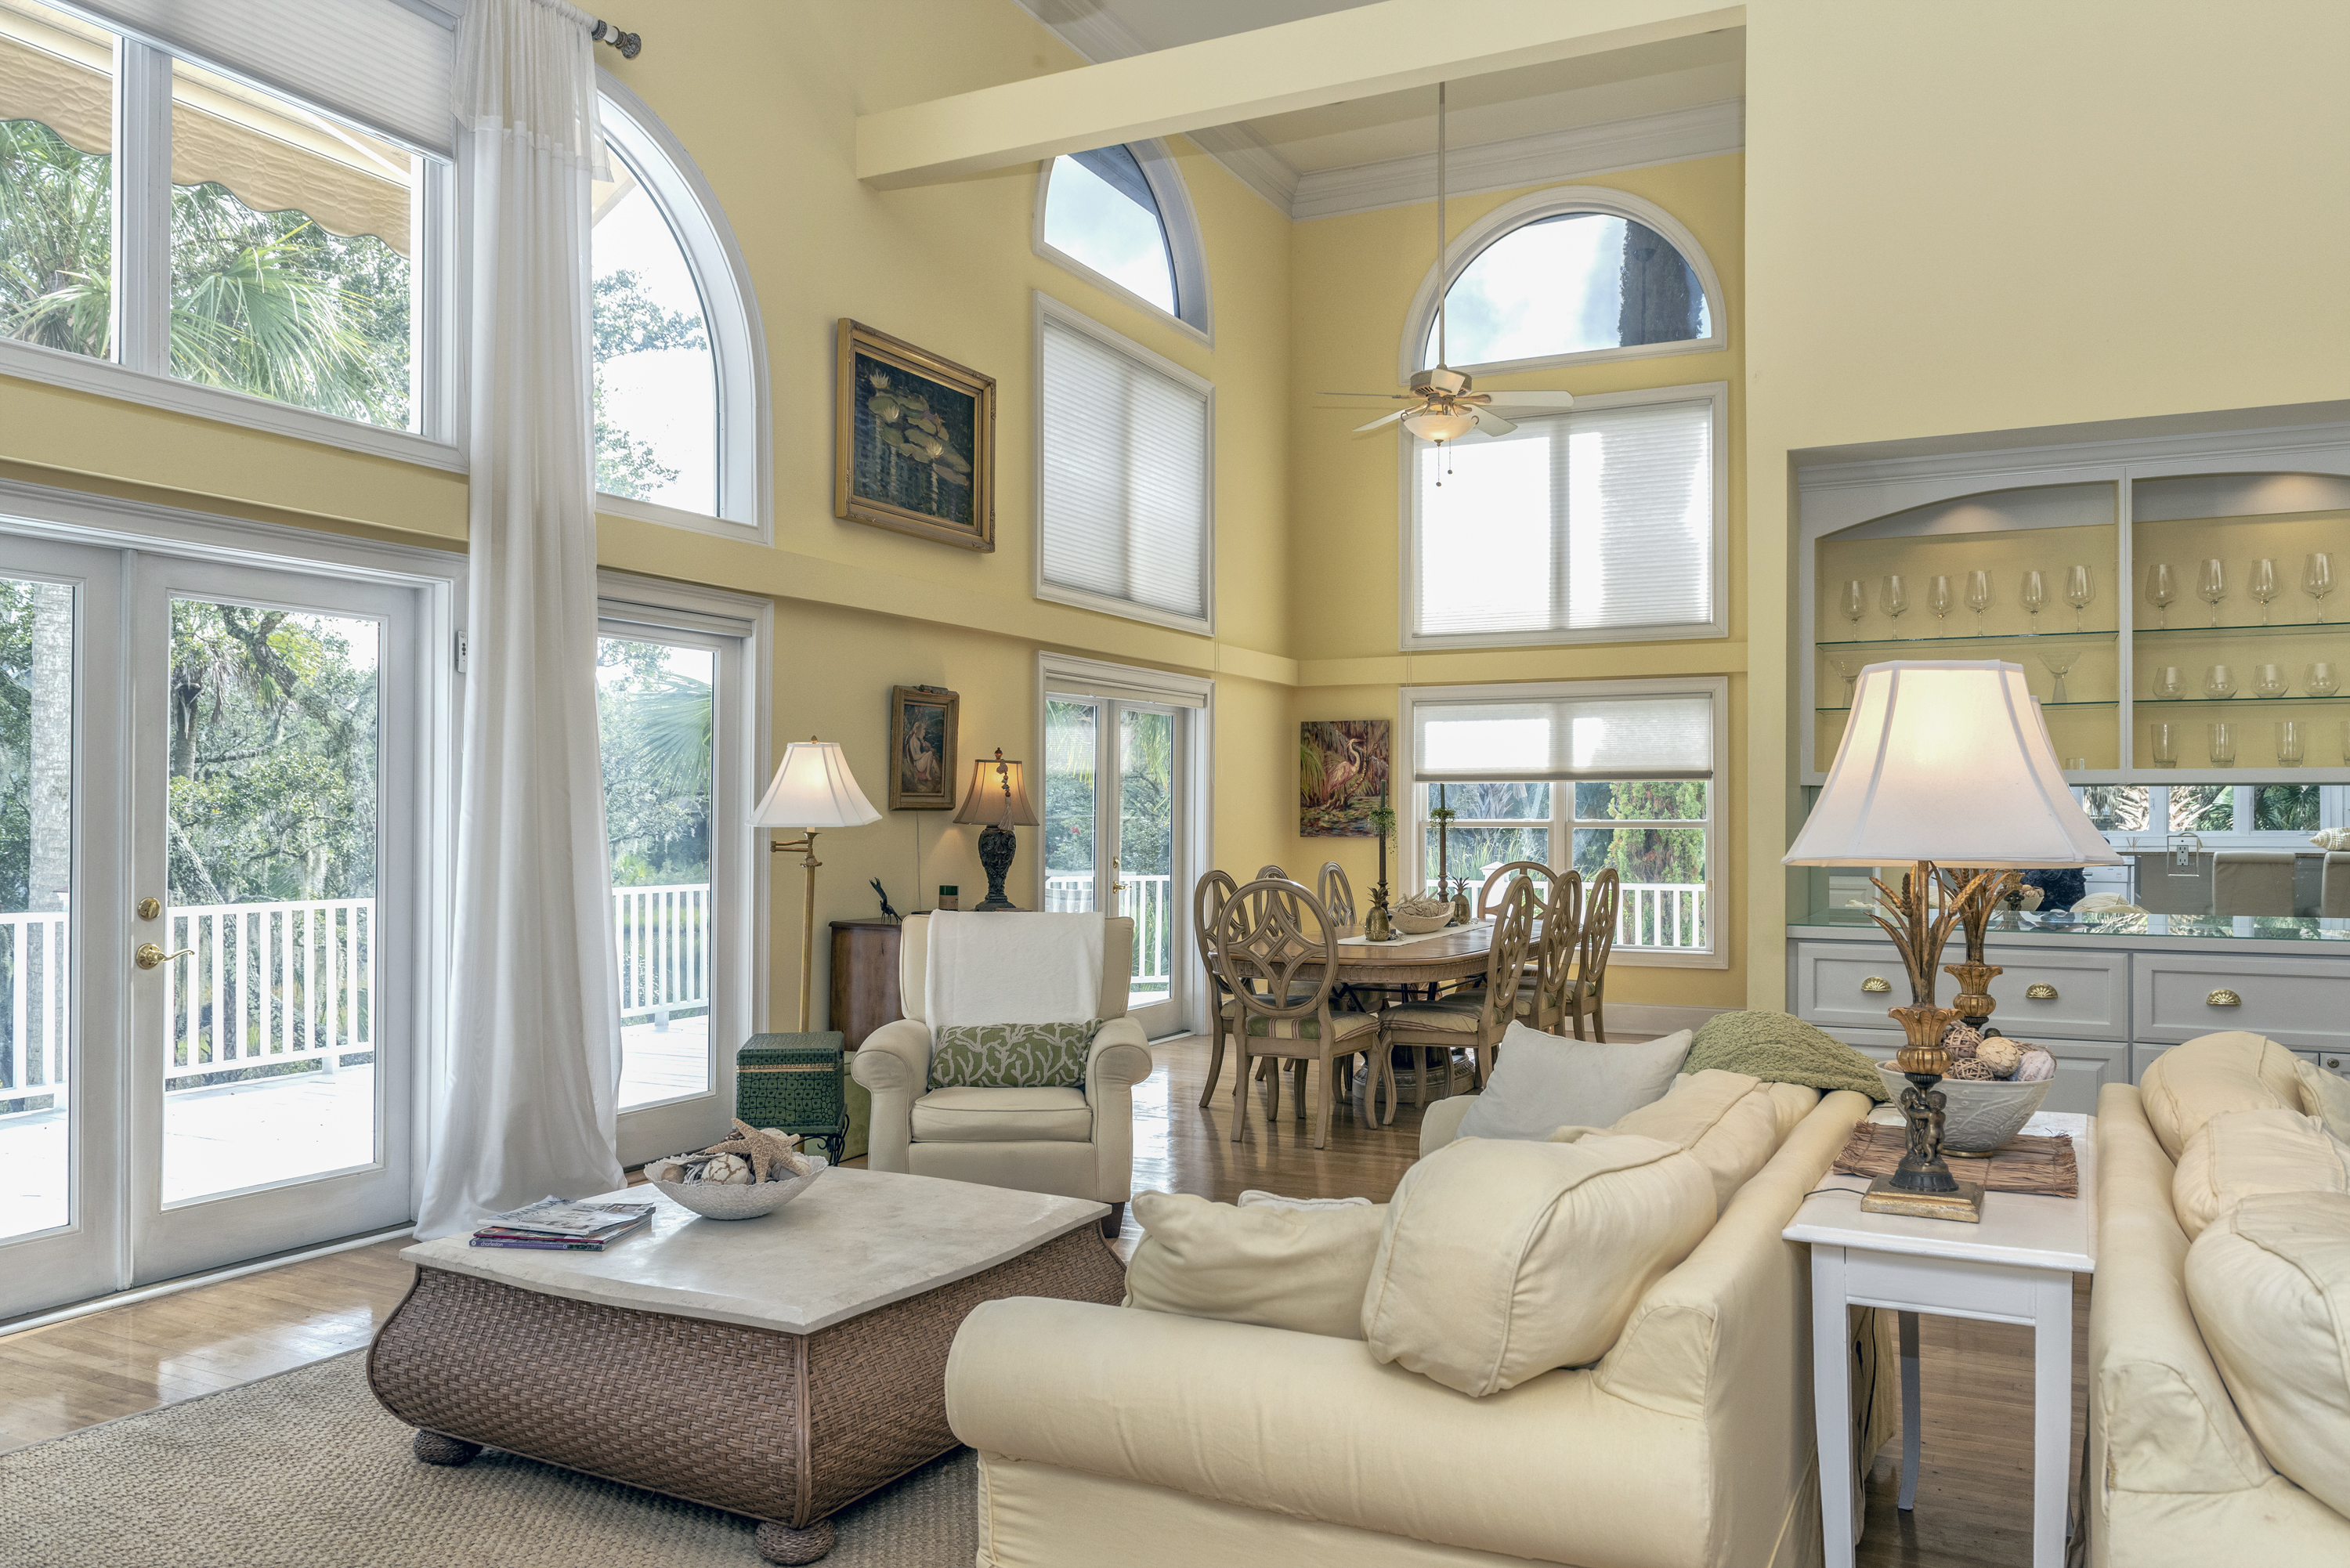 High ceilings and gorgeous views